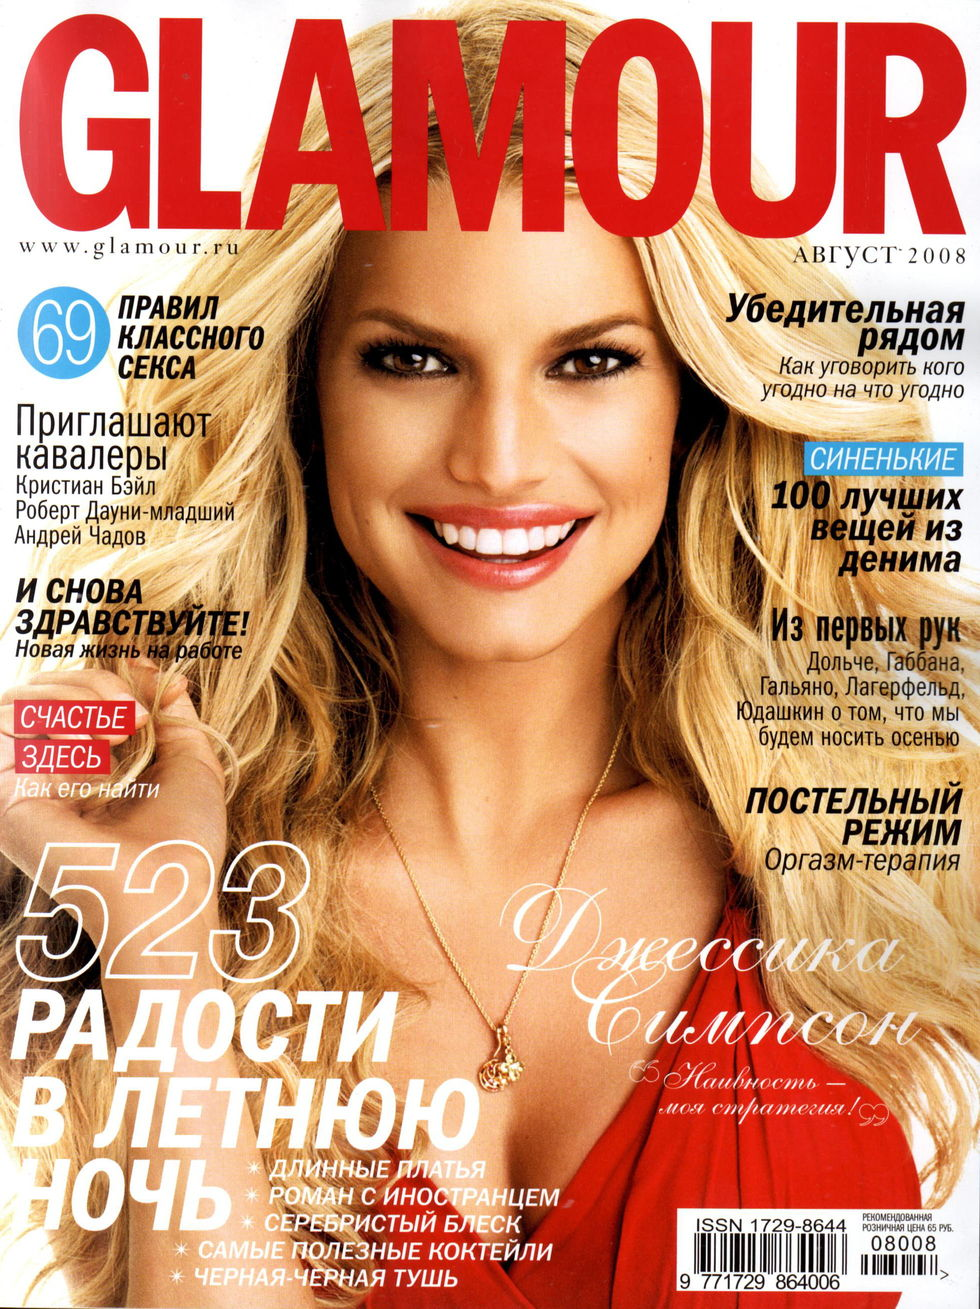 jessica-simpson-glamour-magazine-russia-august-2008-01